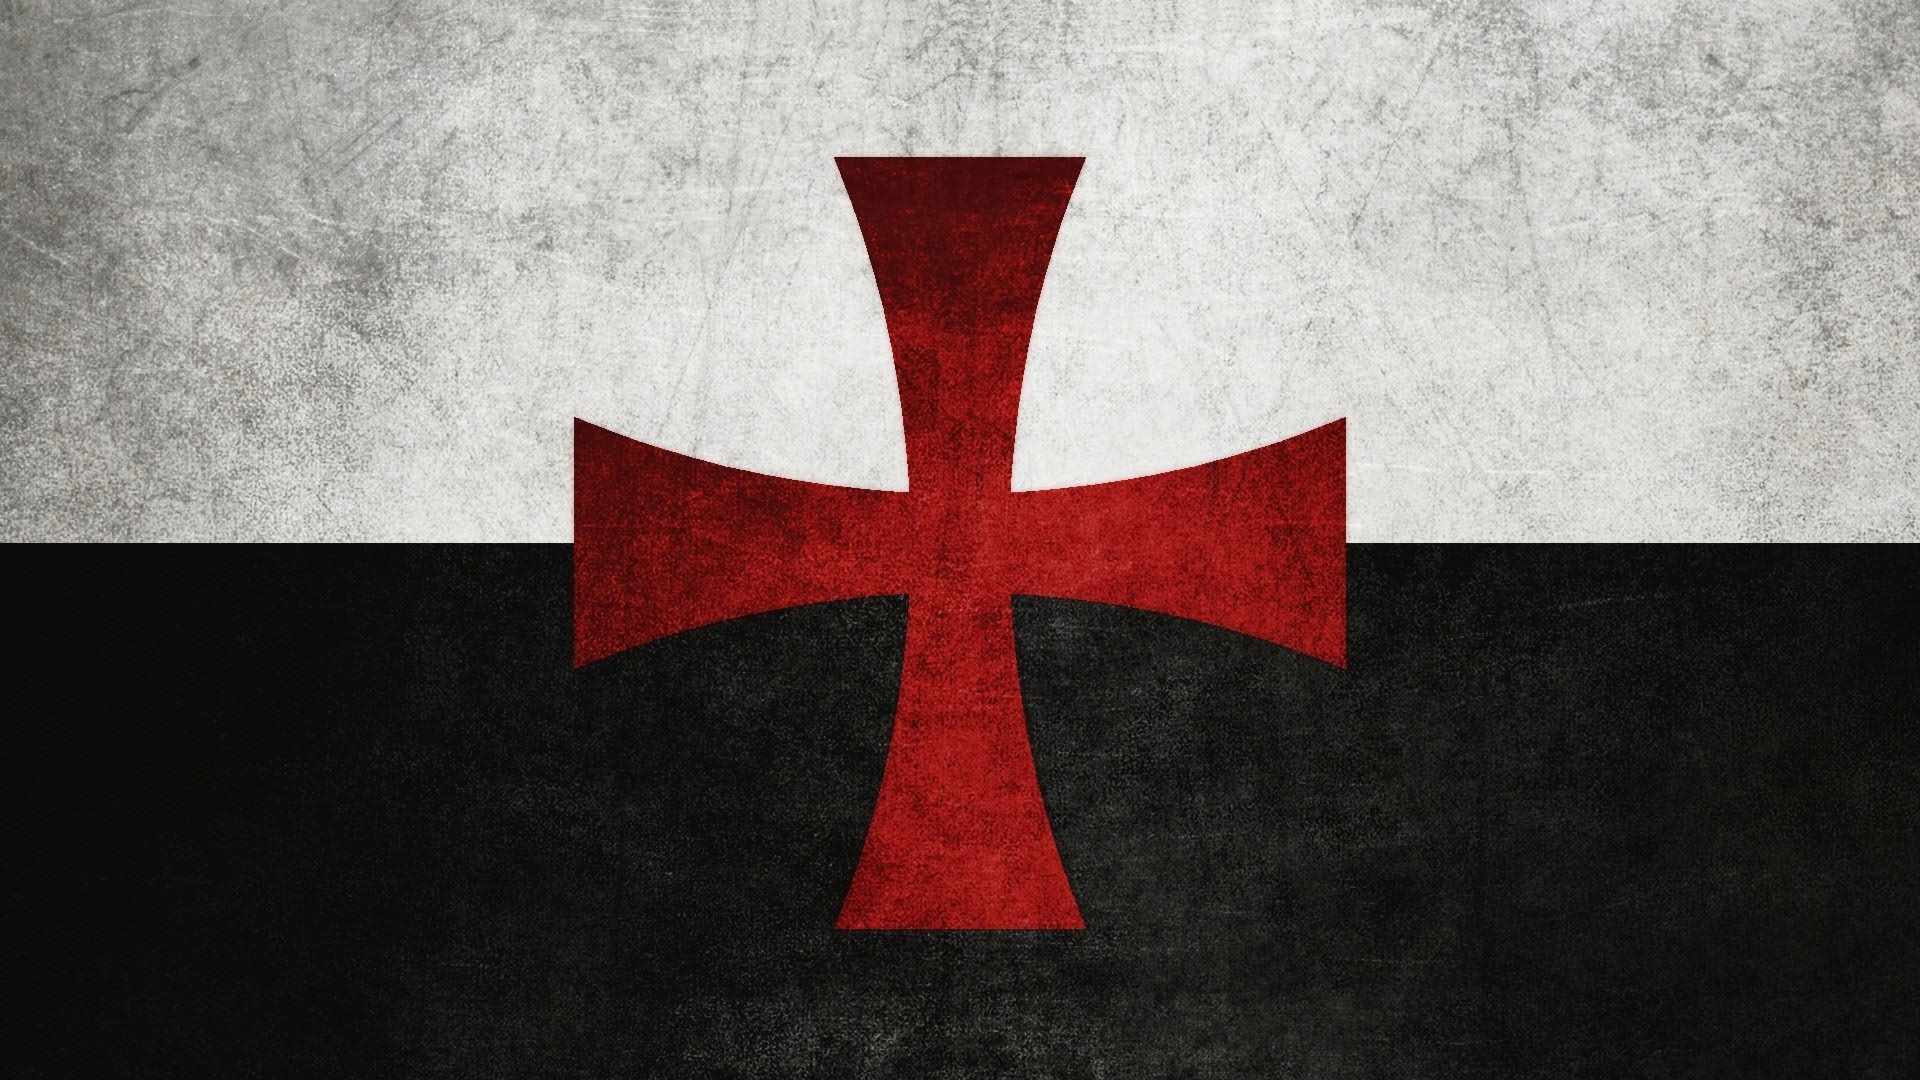 The untold truth of the Templars